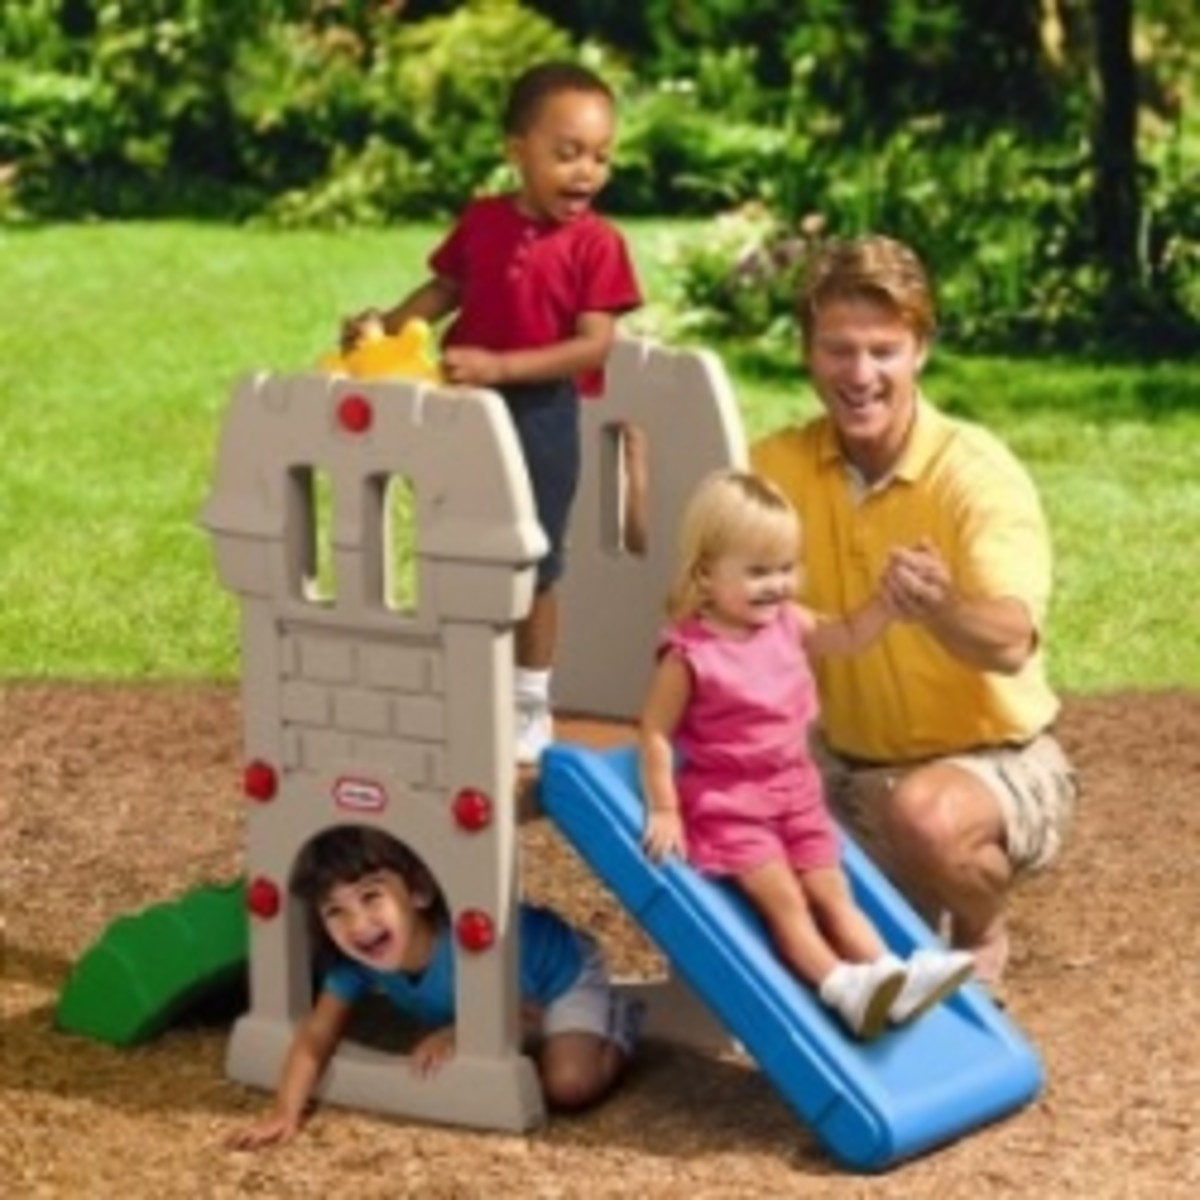 The Best Toddler Slide for Active Playtime